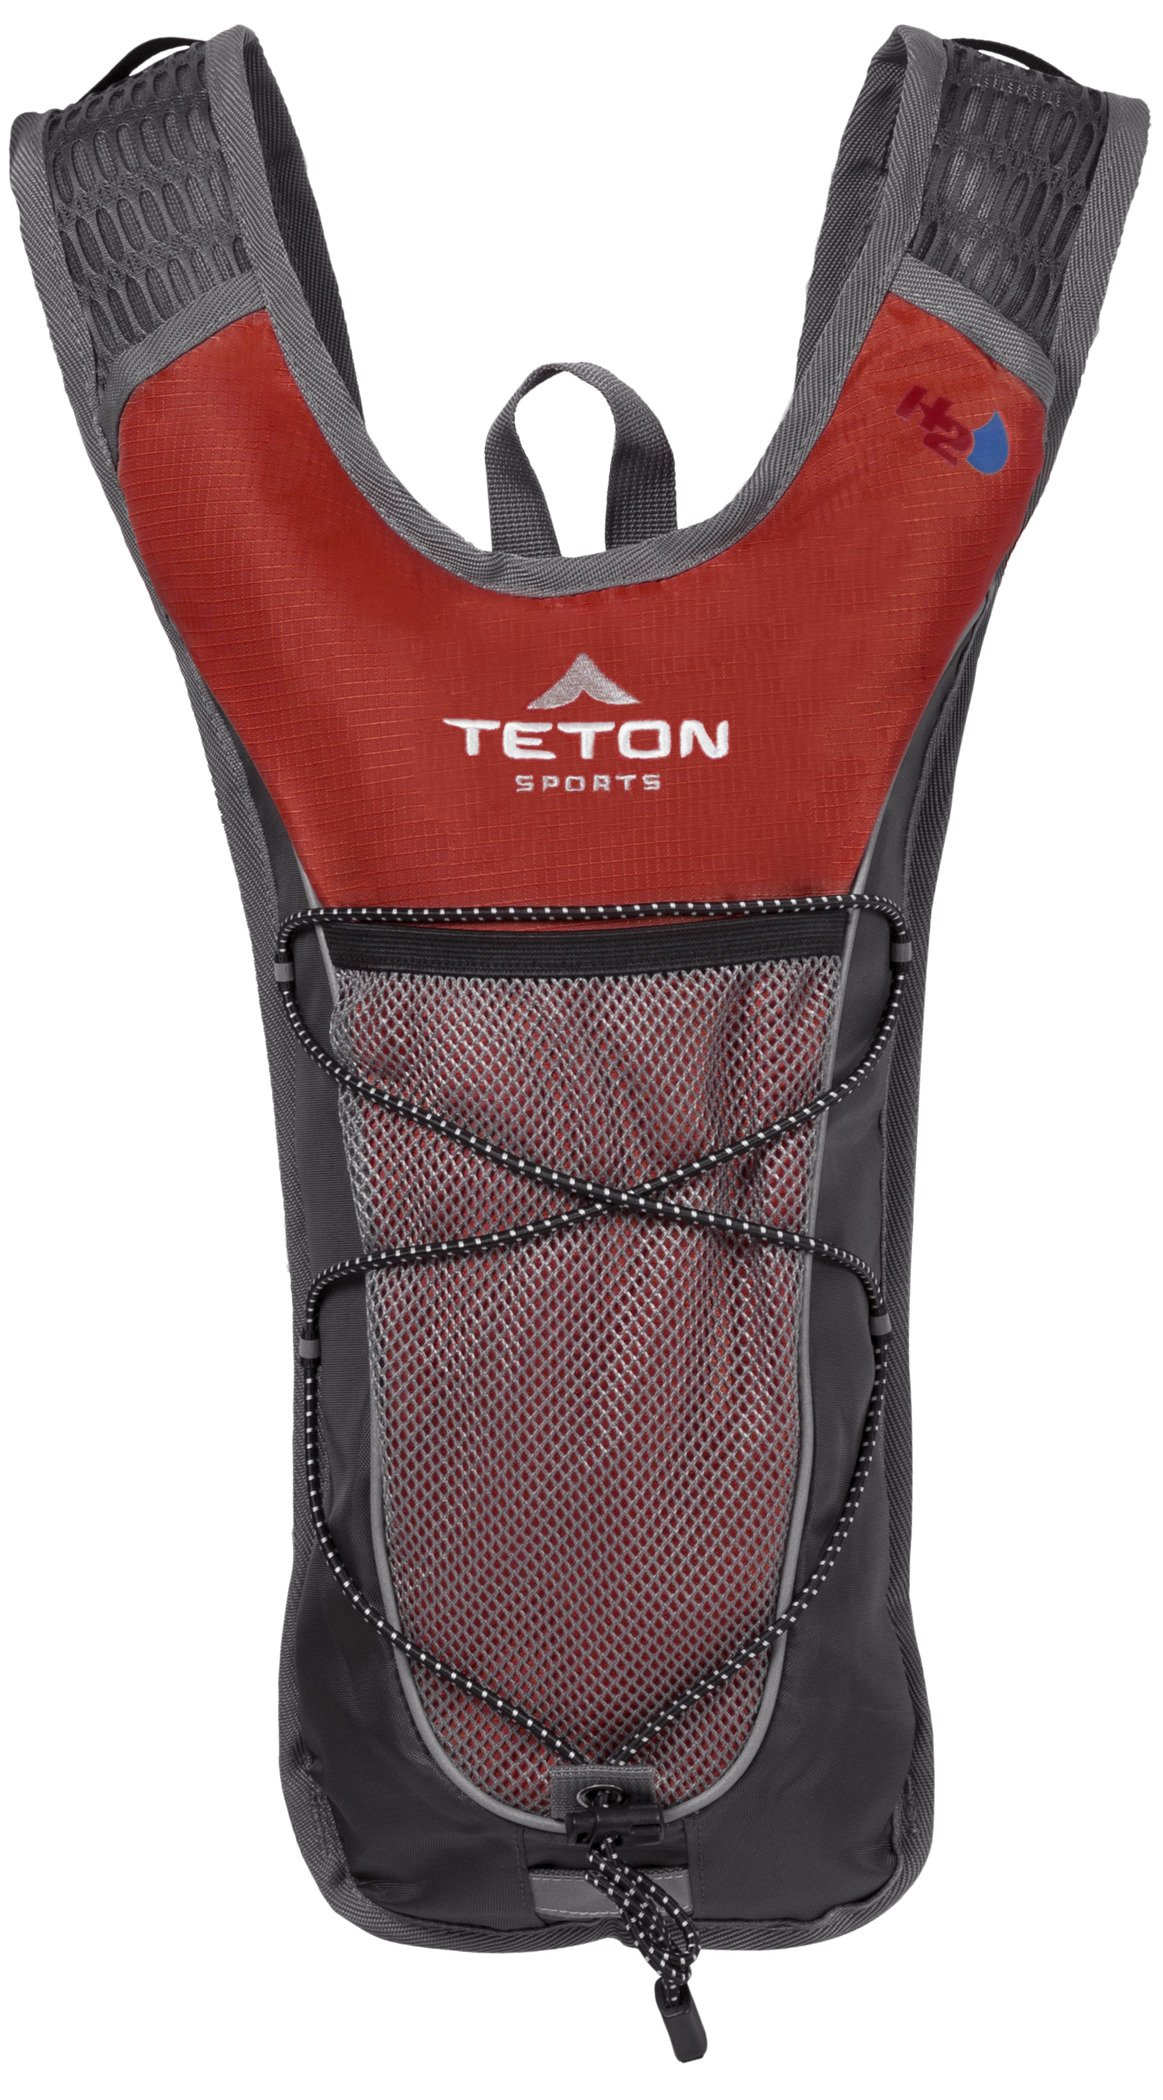 TETON Sports TrailRunner 2.0 Hydration Pack; Backpack for Hiking, Running and Cycling; Free 2-Liter Hydration Bladder; Red by TETON Sports